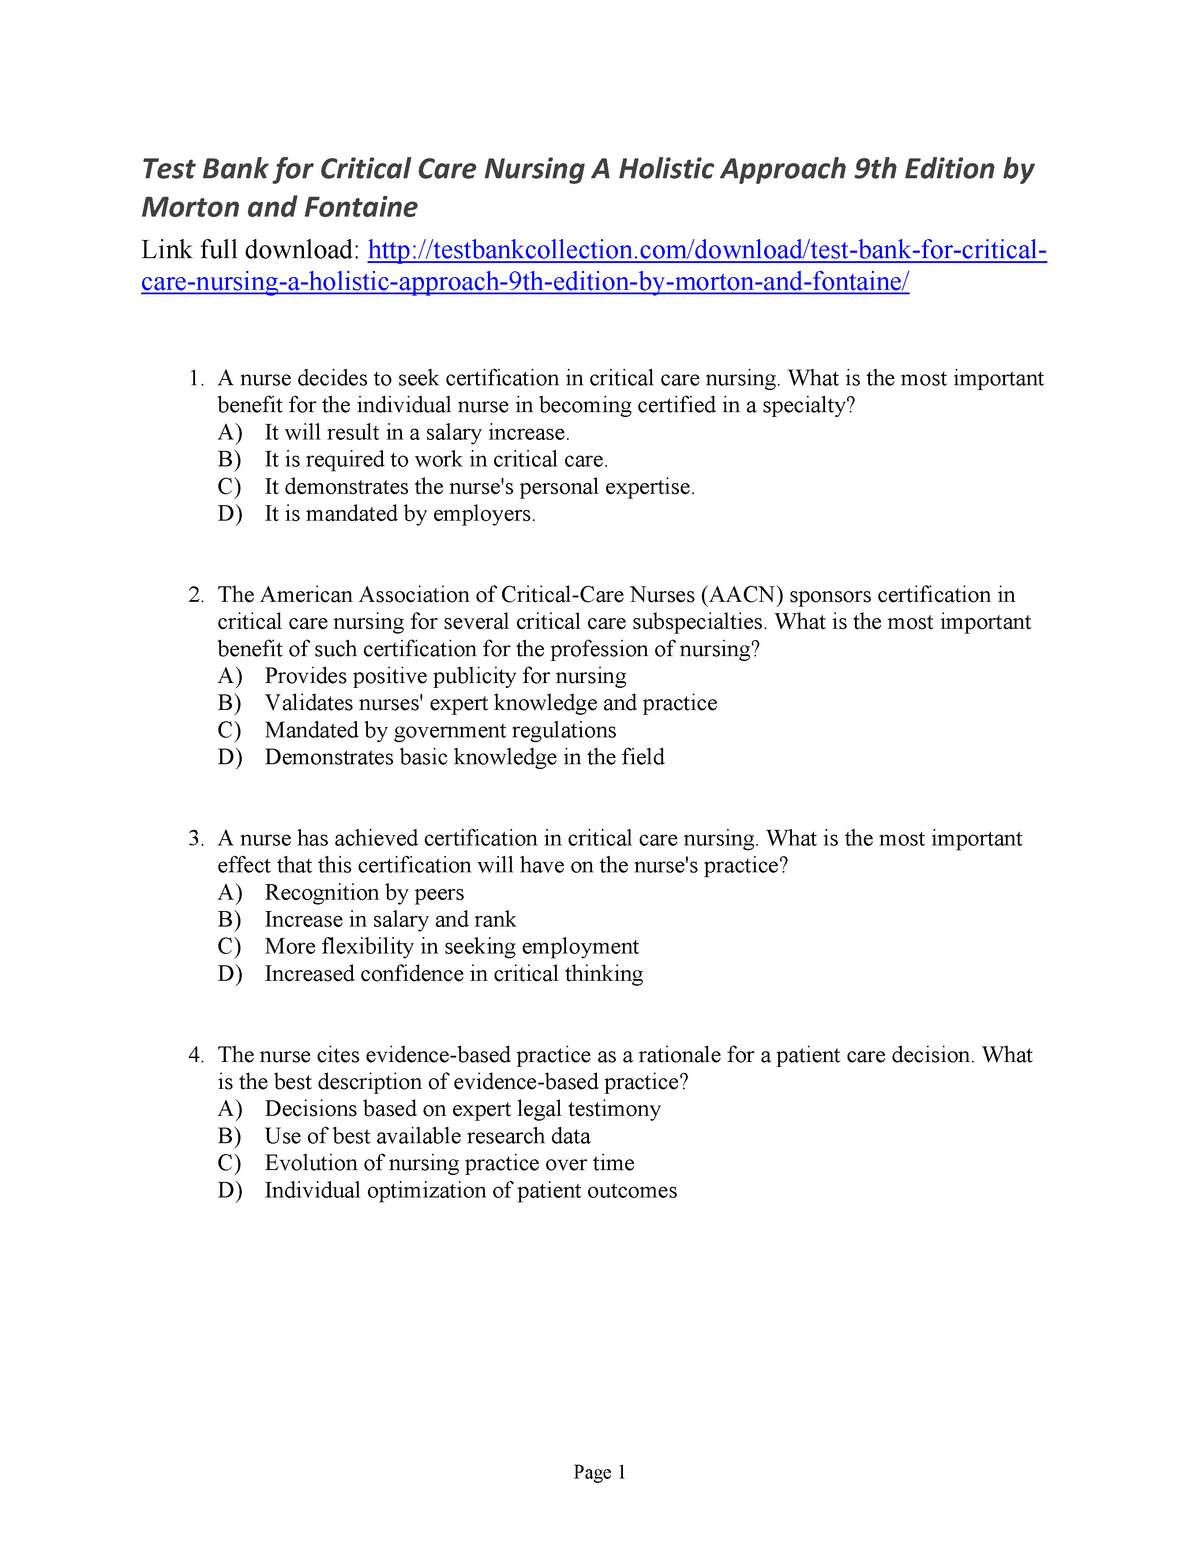 Test Bank For Critical Care Nursing A Holistic Approach 9th